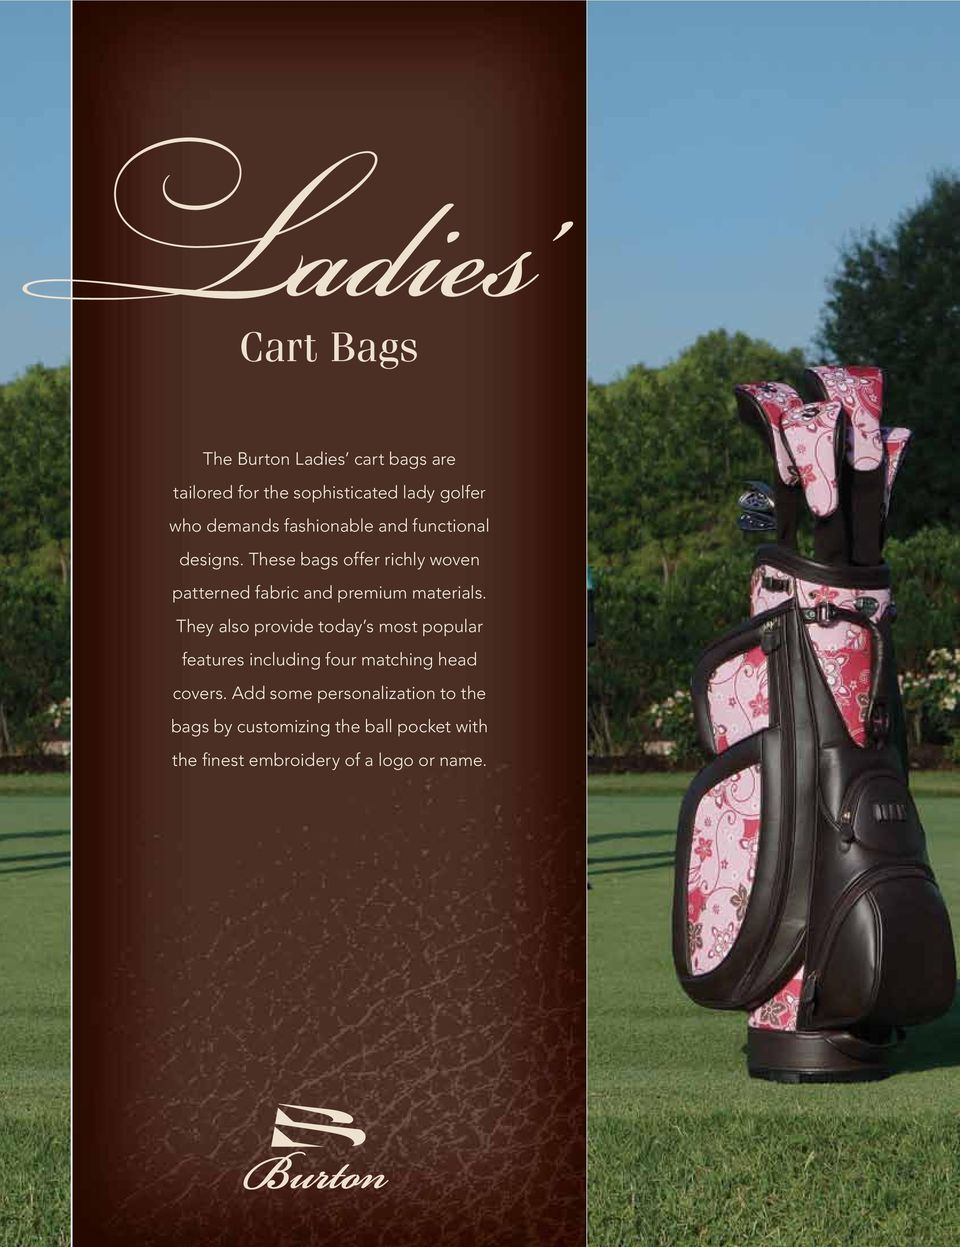 These bags offer richly woven patterned fabric and premium materials.